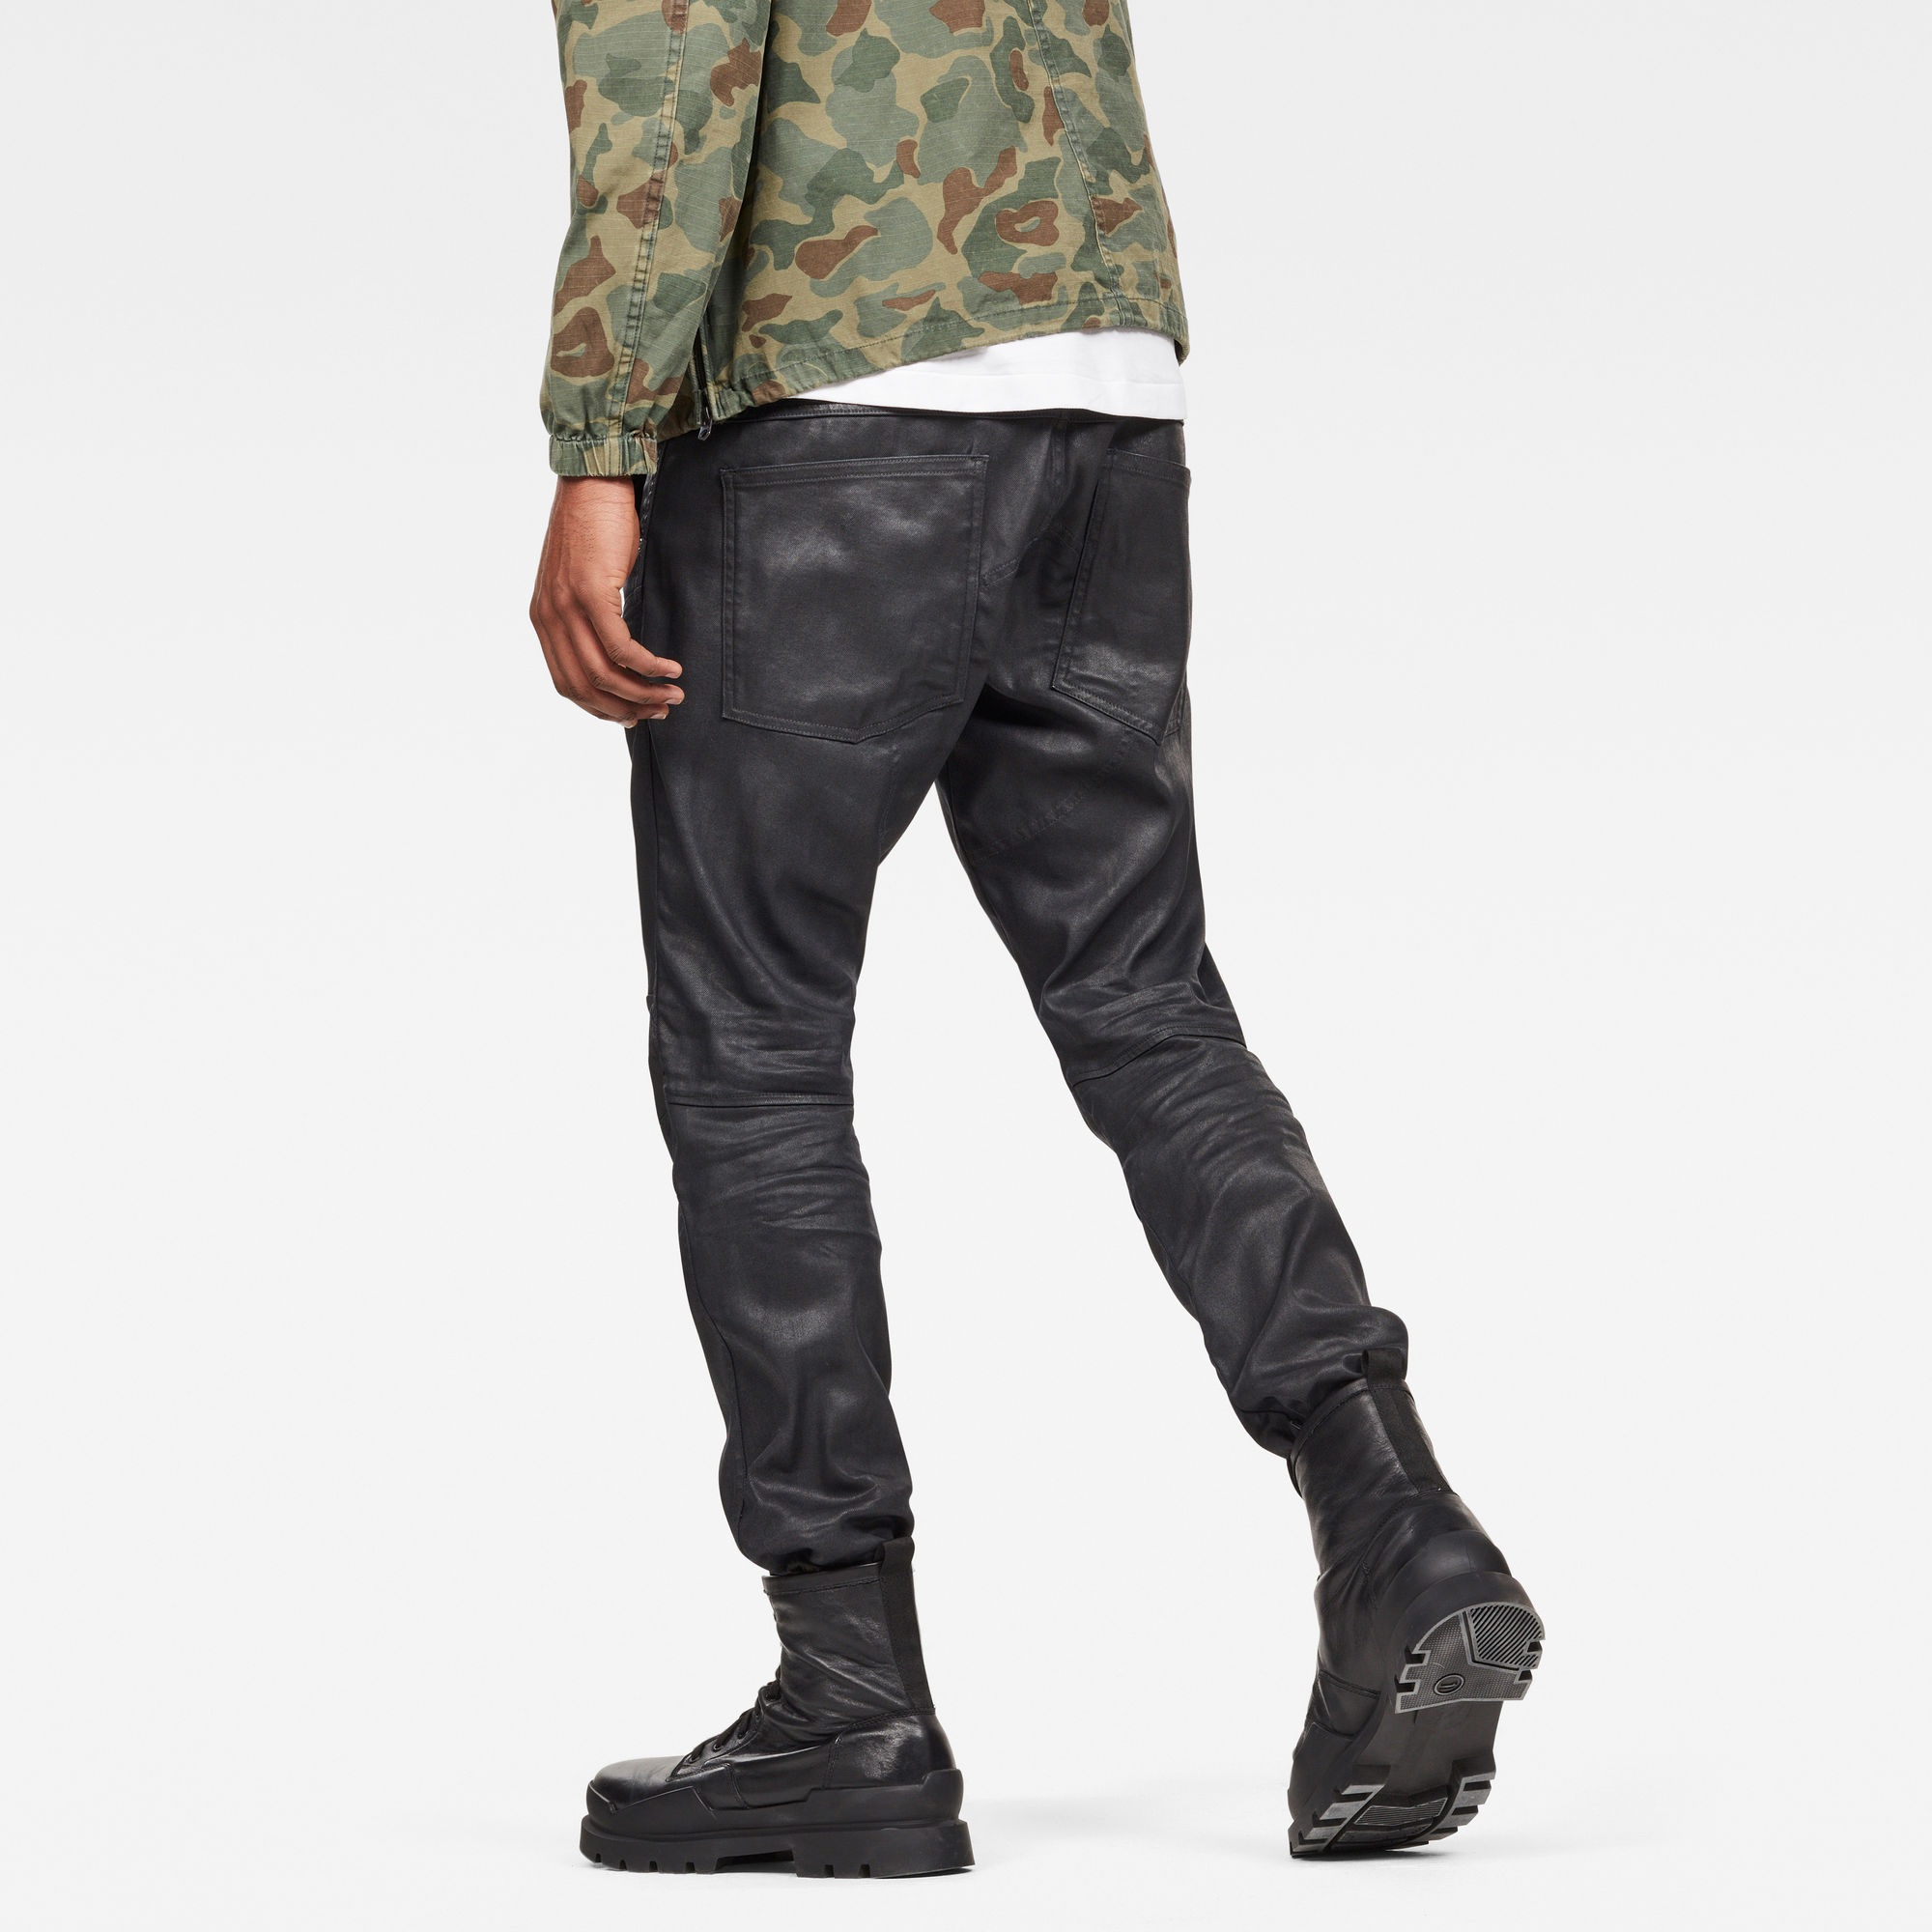 G-Star RAW 5620 3D Sport Straight Tapered Jeans